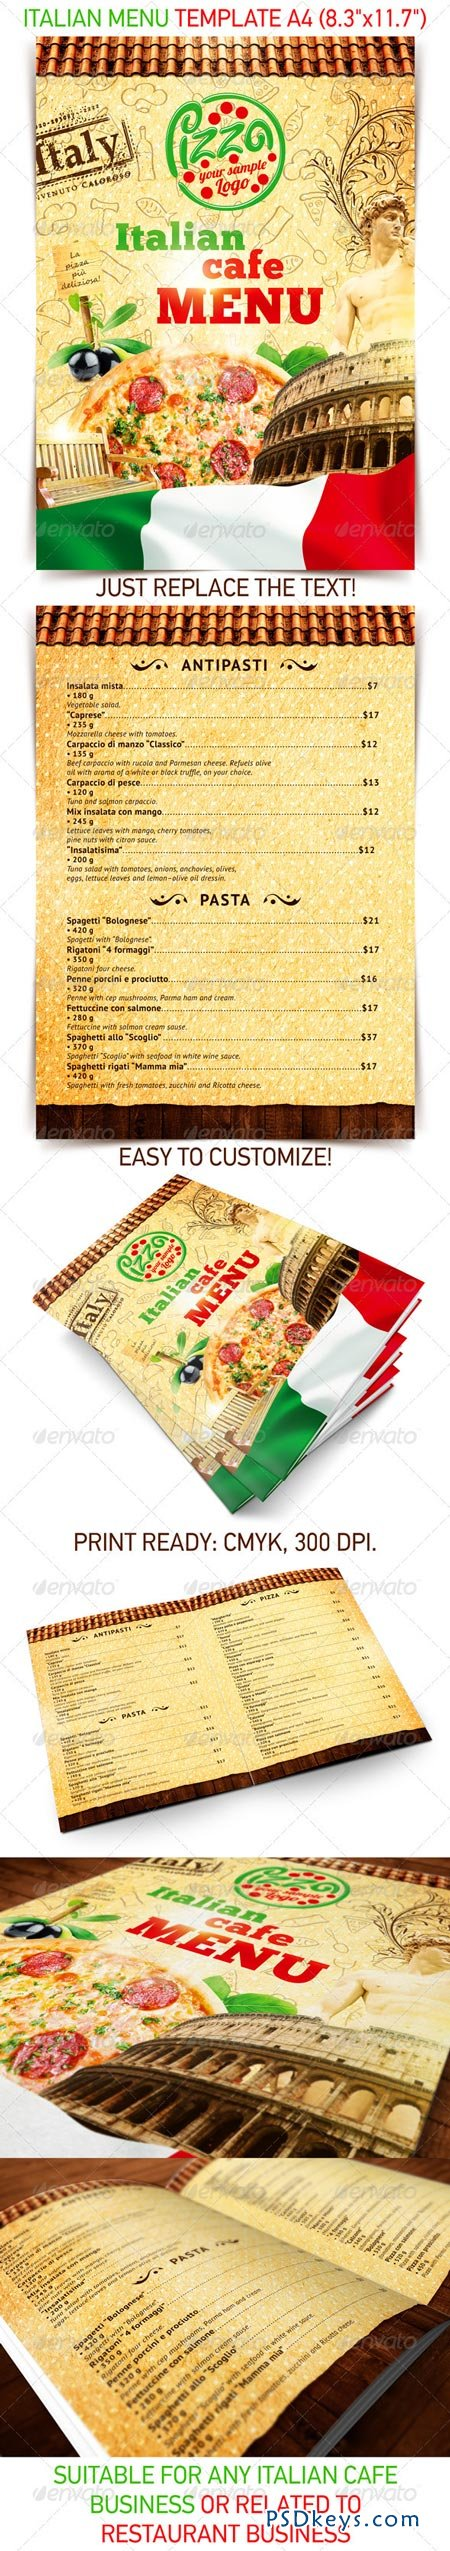 Italian menu template 2502533 » Free Download Photoshop Vector ...